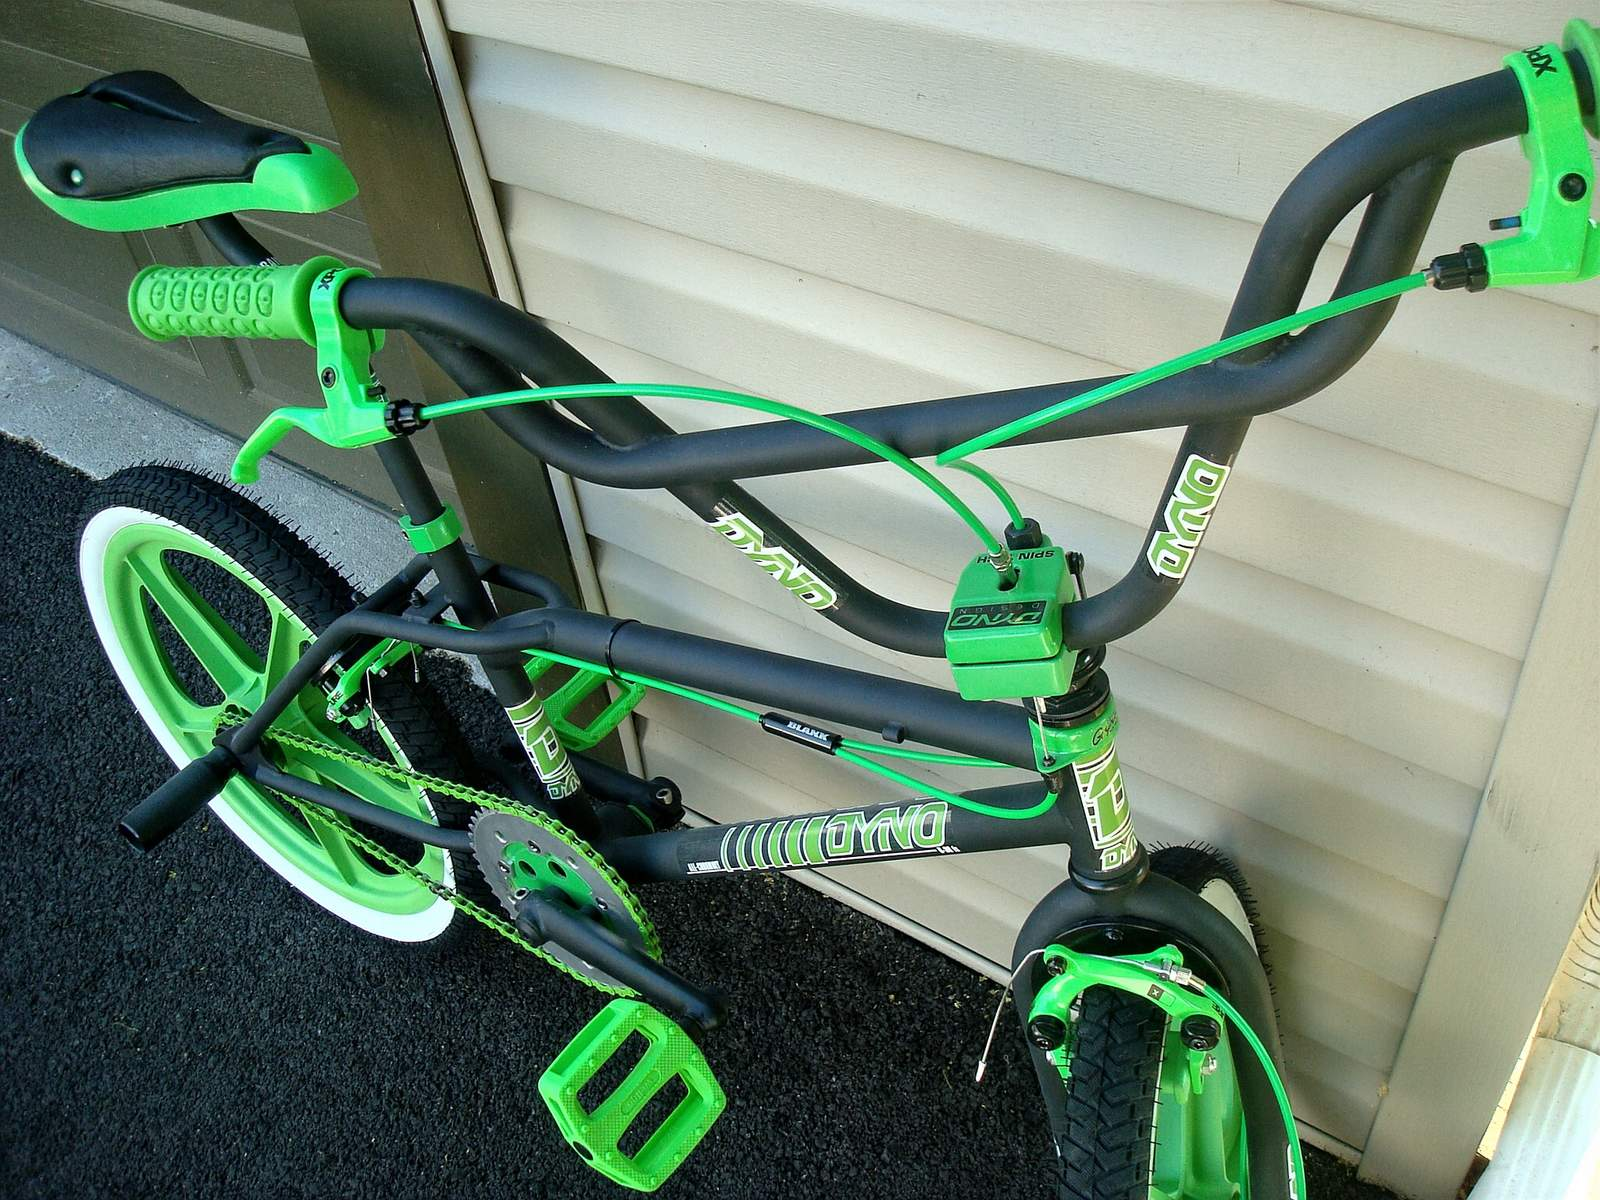 https://s3.amazonaws.com/uploads.bmxmuseum.com/user-images/55127/1985-dyno-d-30---black--green-00159569294f2.jpg